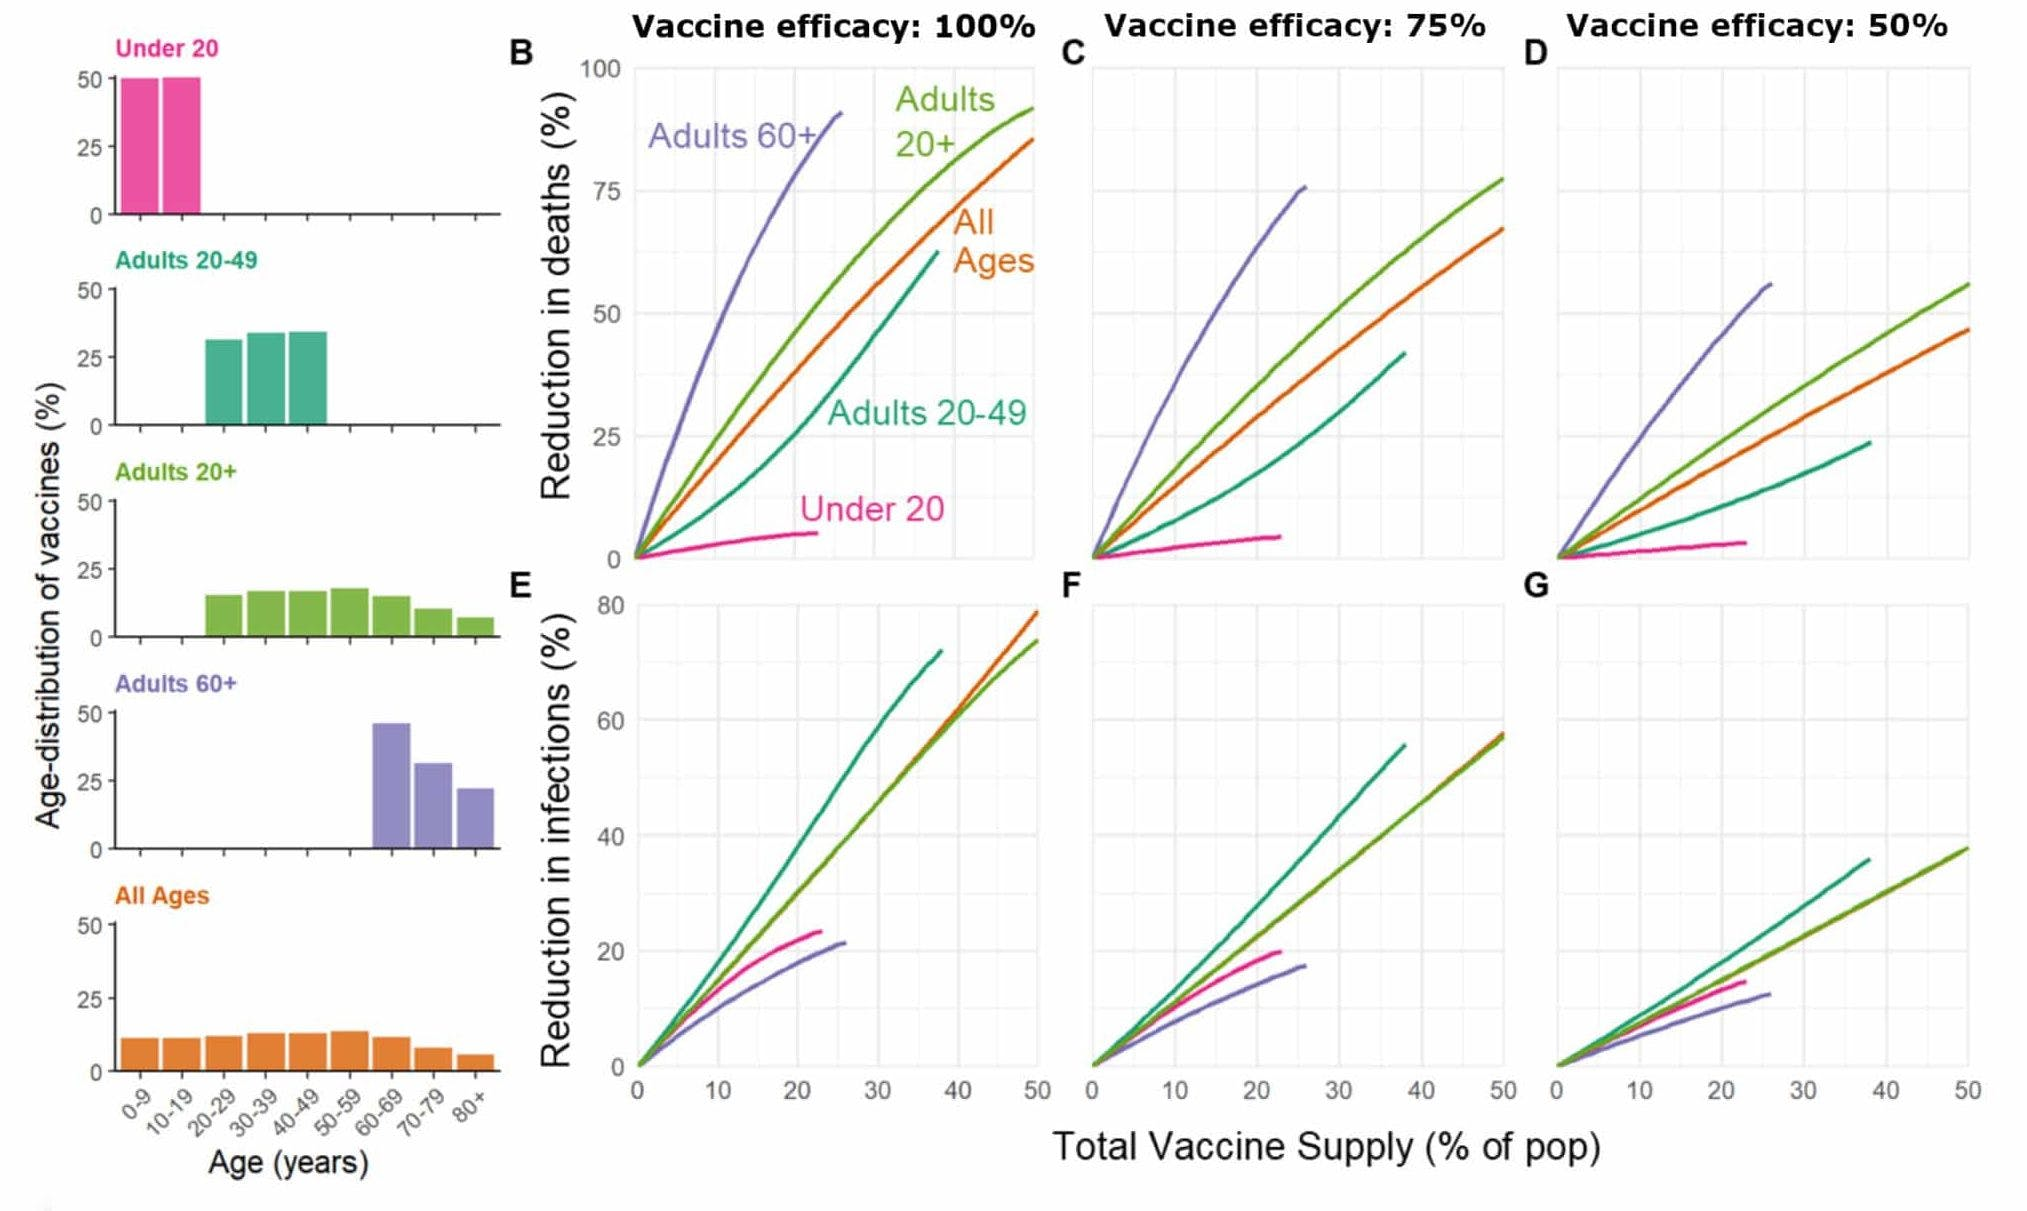 Vaccine rollout scenarios developed by Bubar et al. include five different ways of distributing the first doses of vaccines, presented in the left panel. The scenarios show the same pattern: to prevent deaths, vaccinate the elderly first, and then move on to other, healthier groups or the general population.